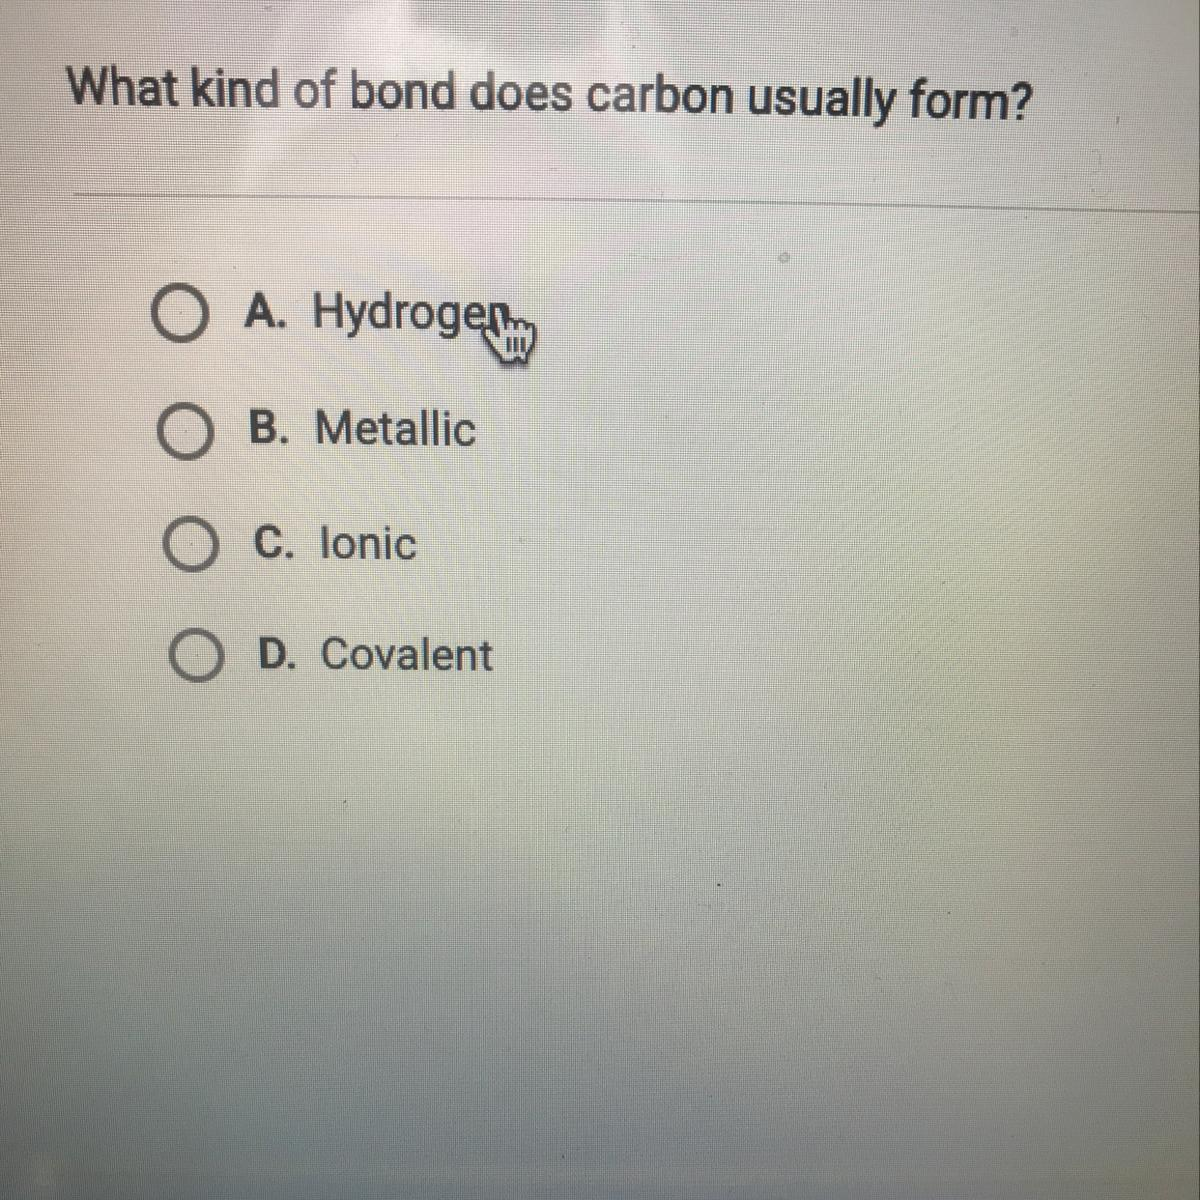 what kind of bond does carbon usually form from   Brainly.com